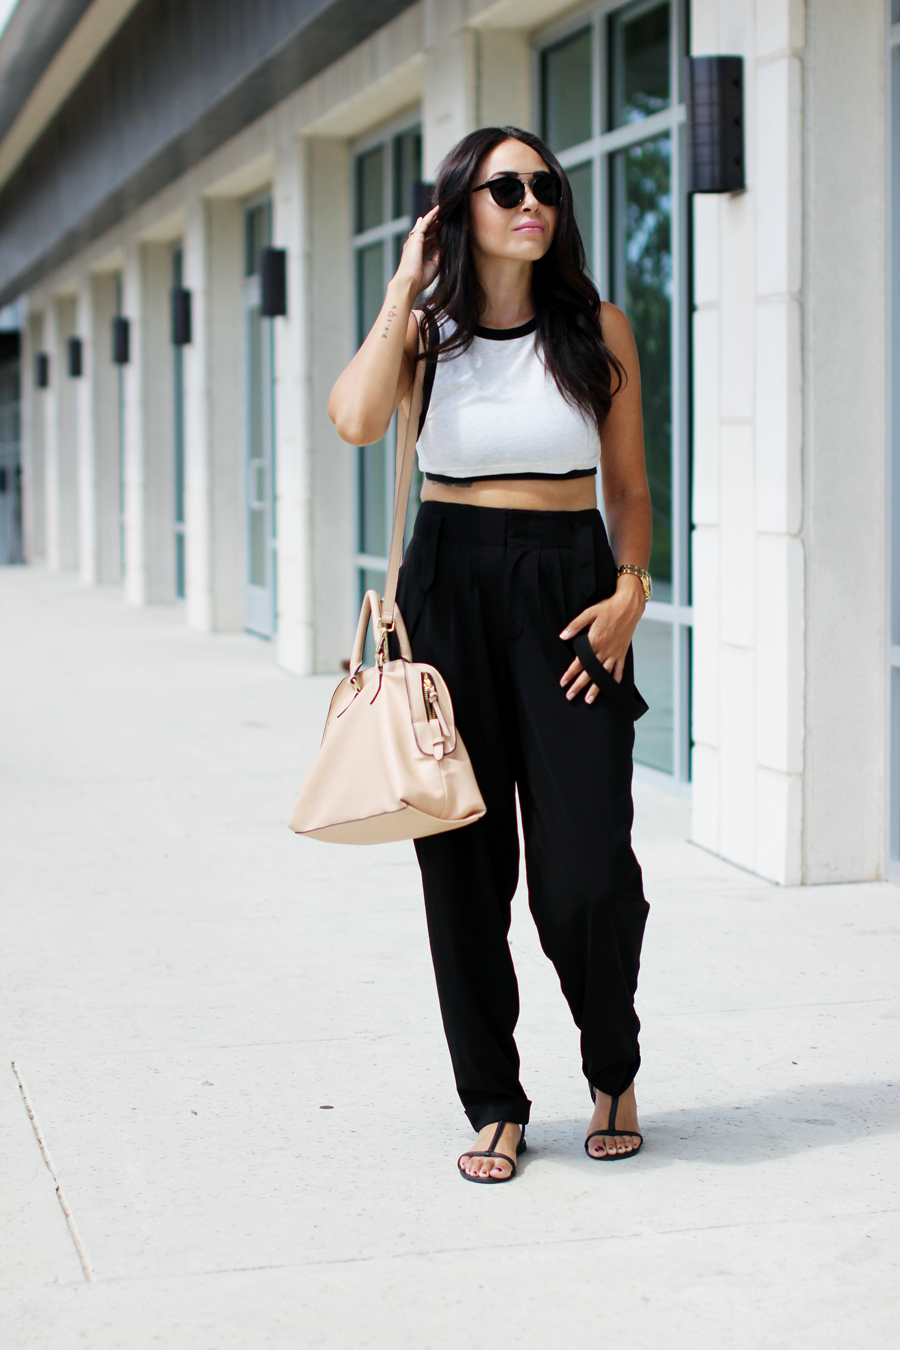 FTT-OVERALL-TROUSER-PANT-CROP-TOP-BLUSH-BAG-11